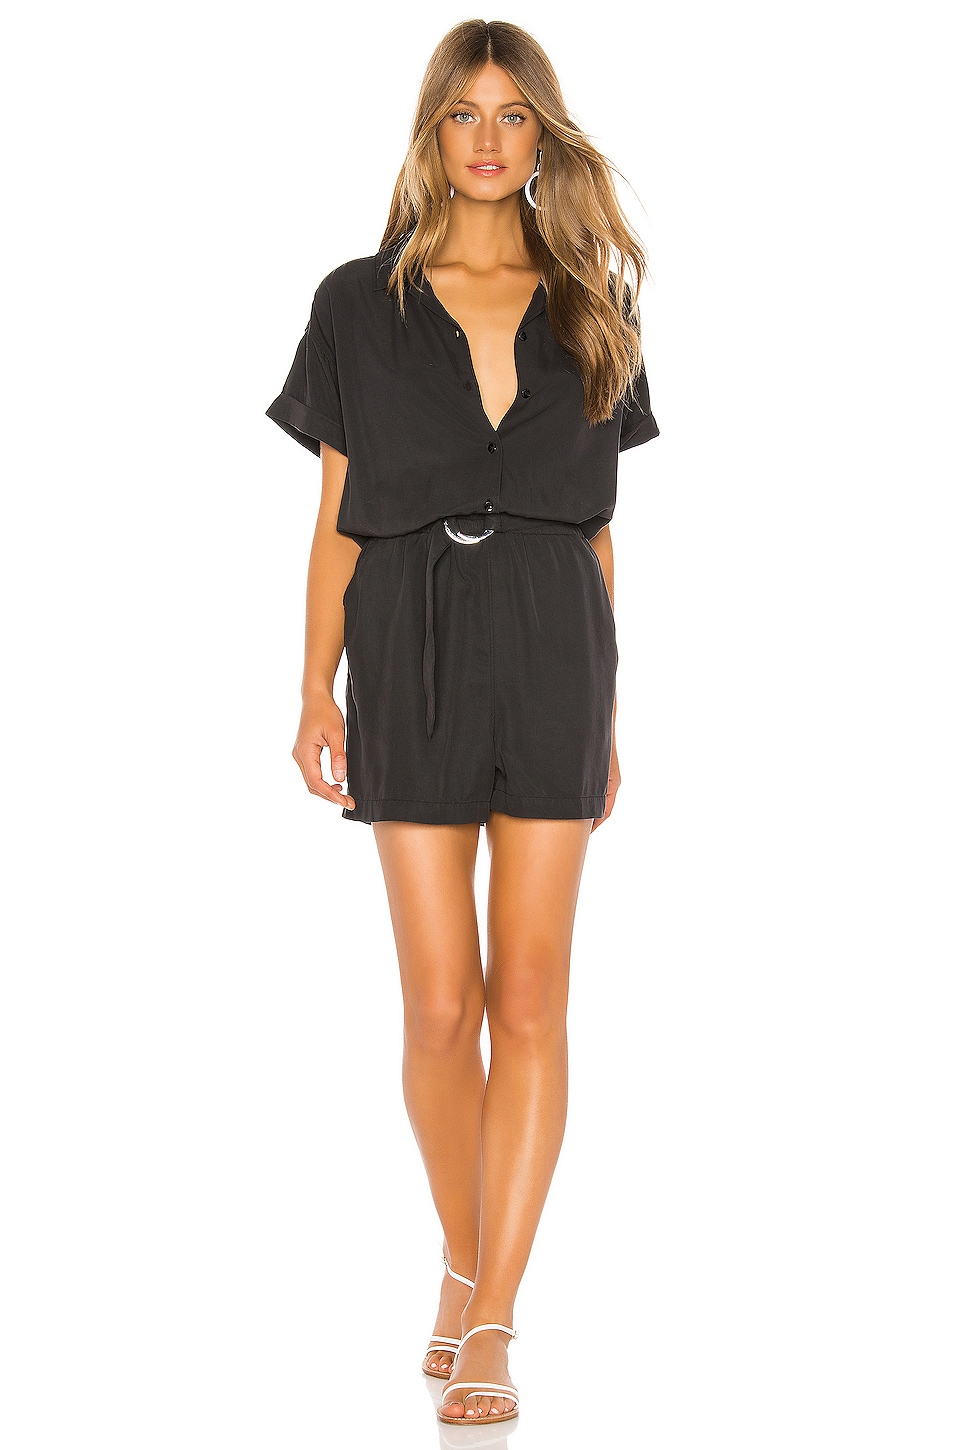 TAVIK Swimwear Farrah Romper in Black